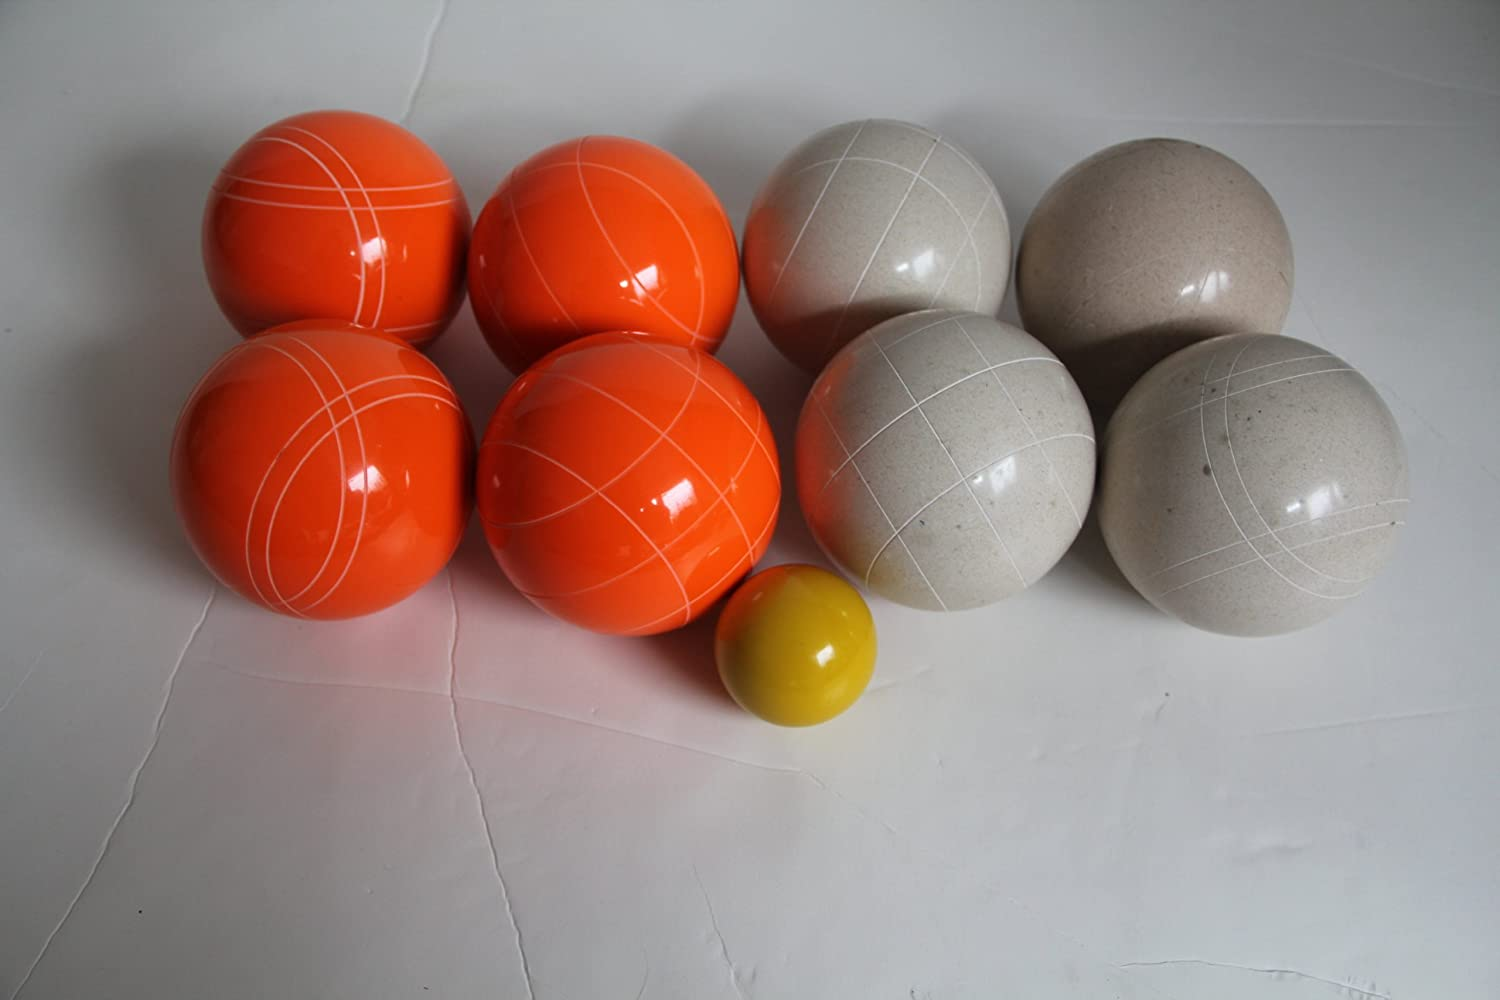 Premium Quality EPCO Tournament Bocce Set – 107mm White and Orange Bocce Ball… günstig online kaufen